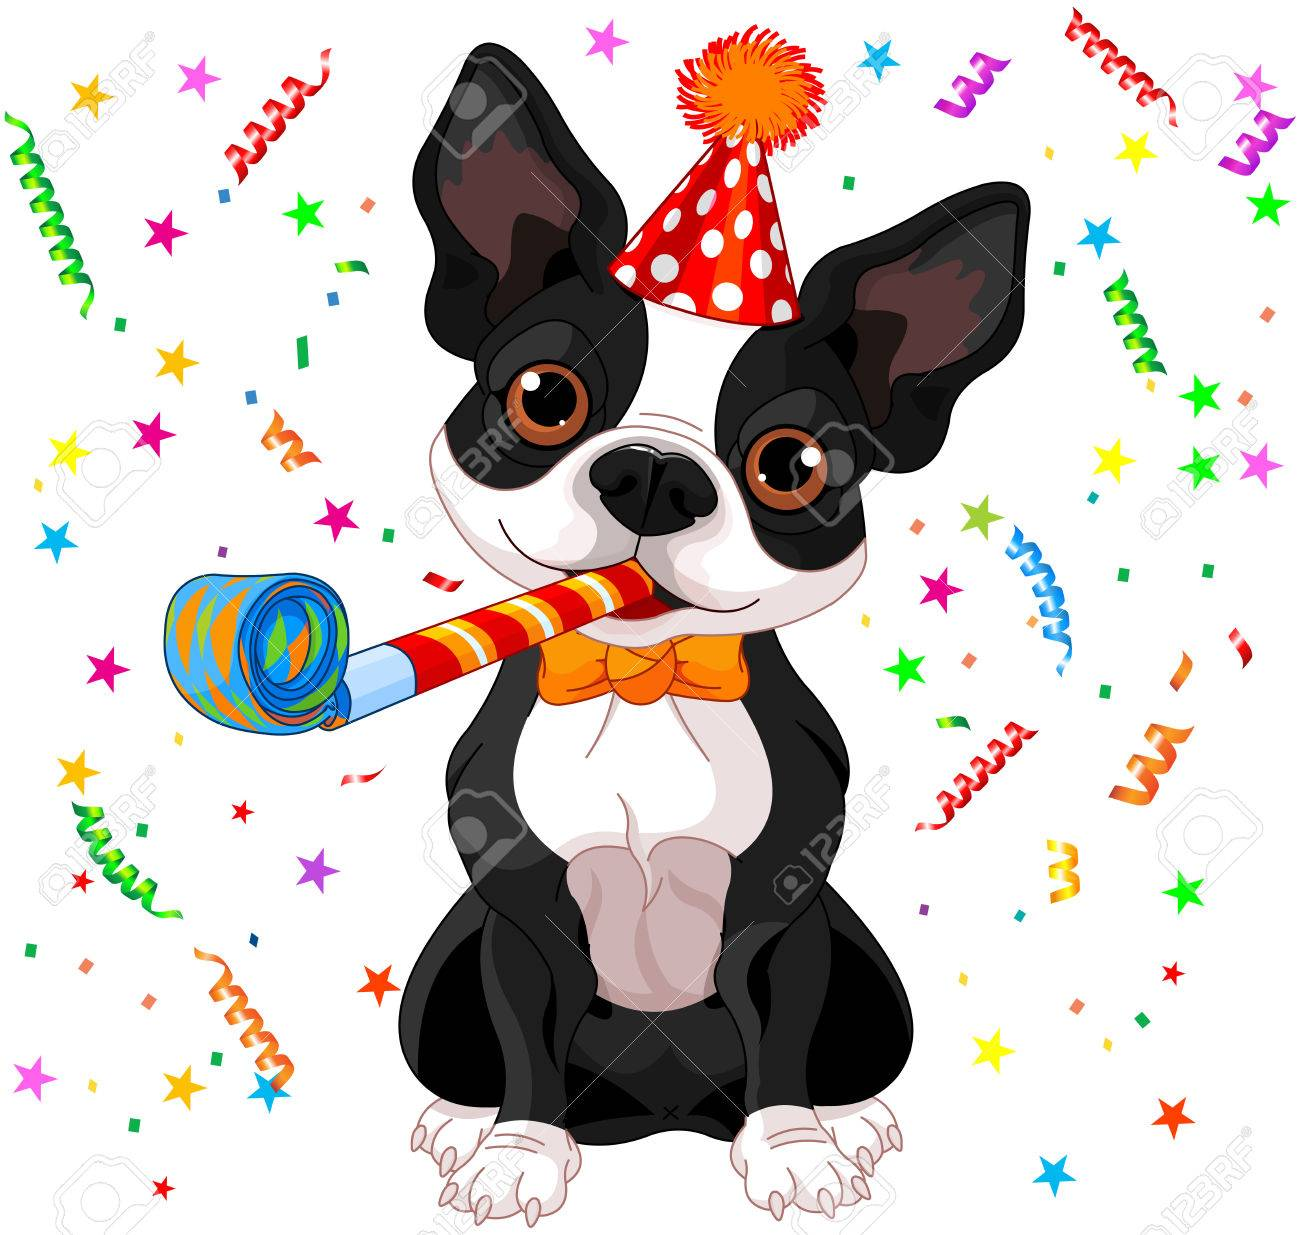 Carnet de bord de Kunio 35588778-illustration-of-cute-boston-terrier-celebrating